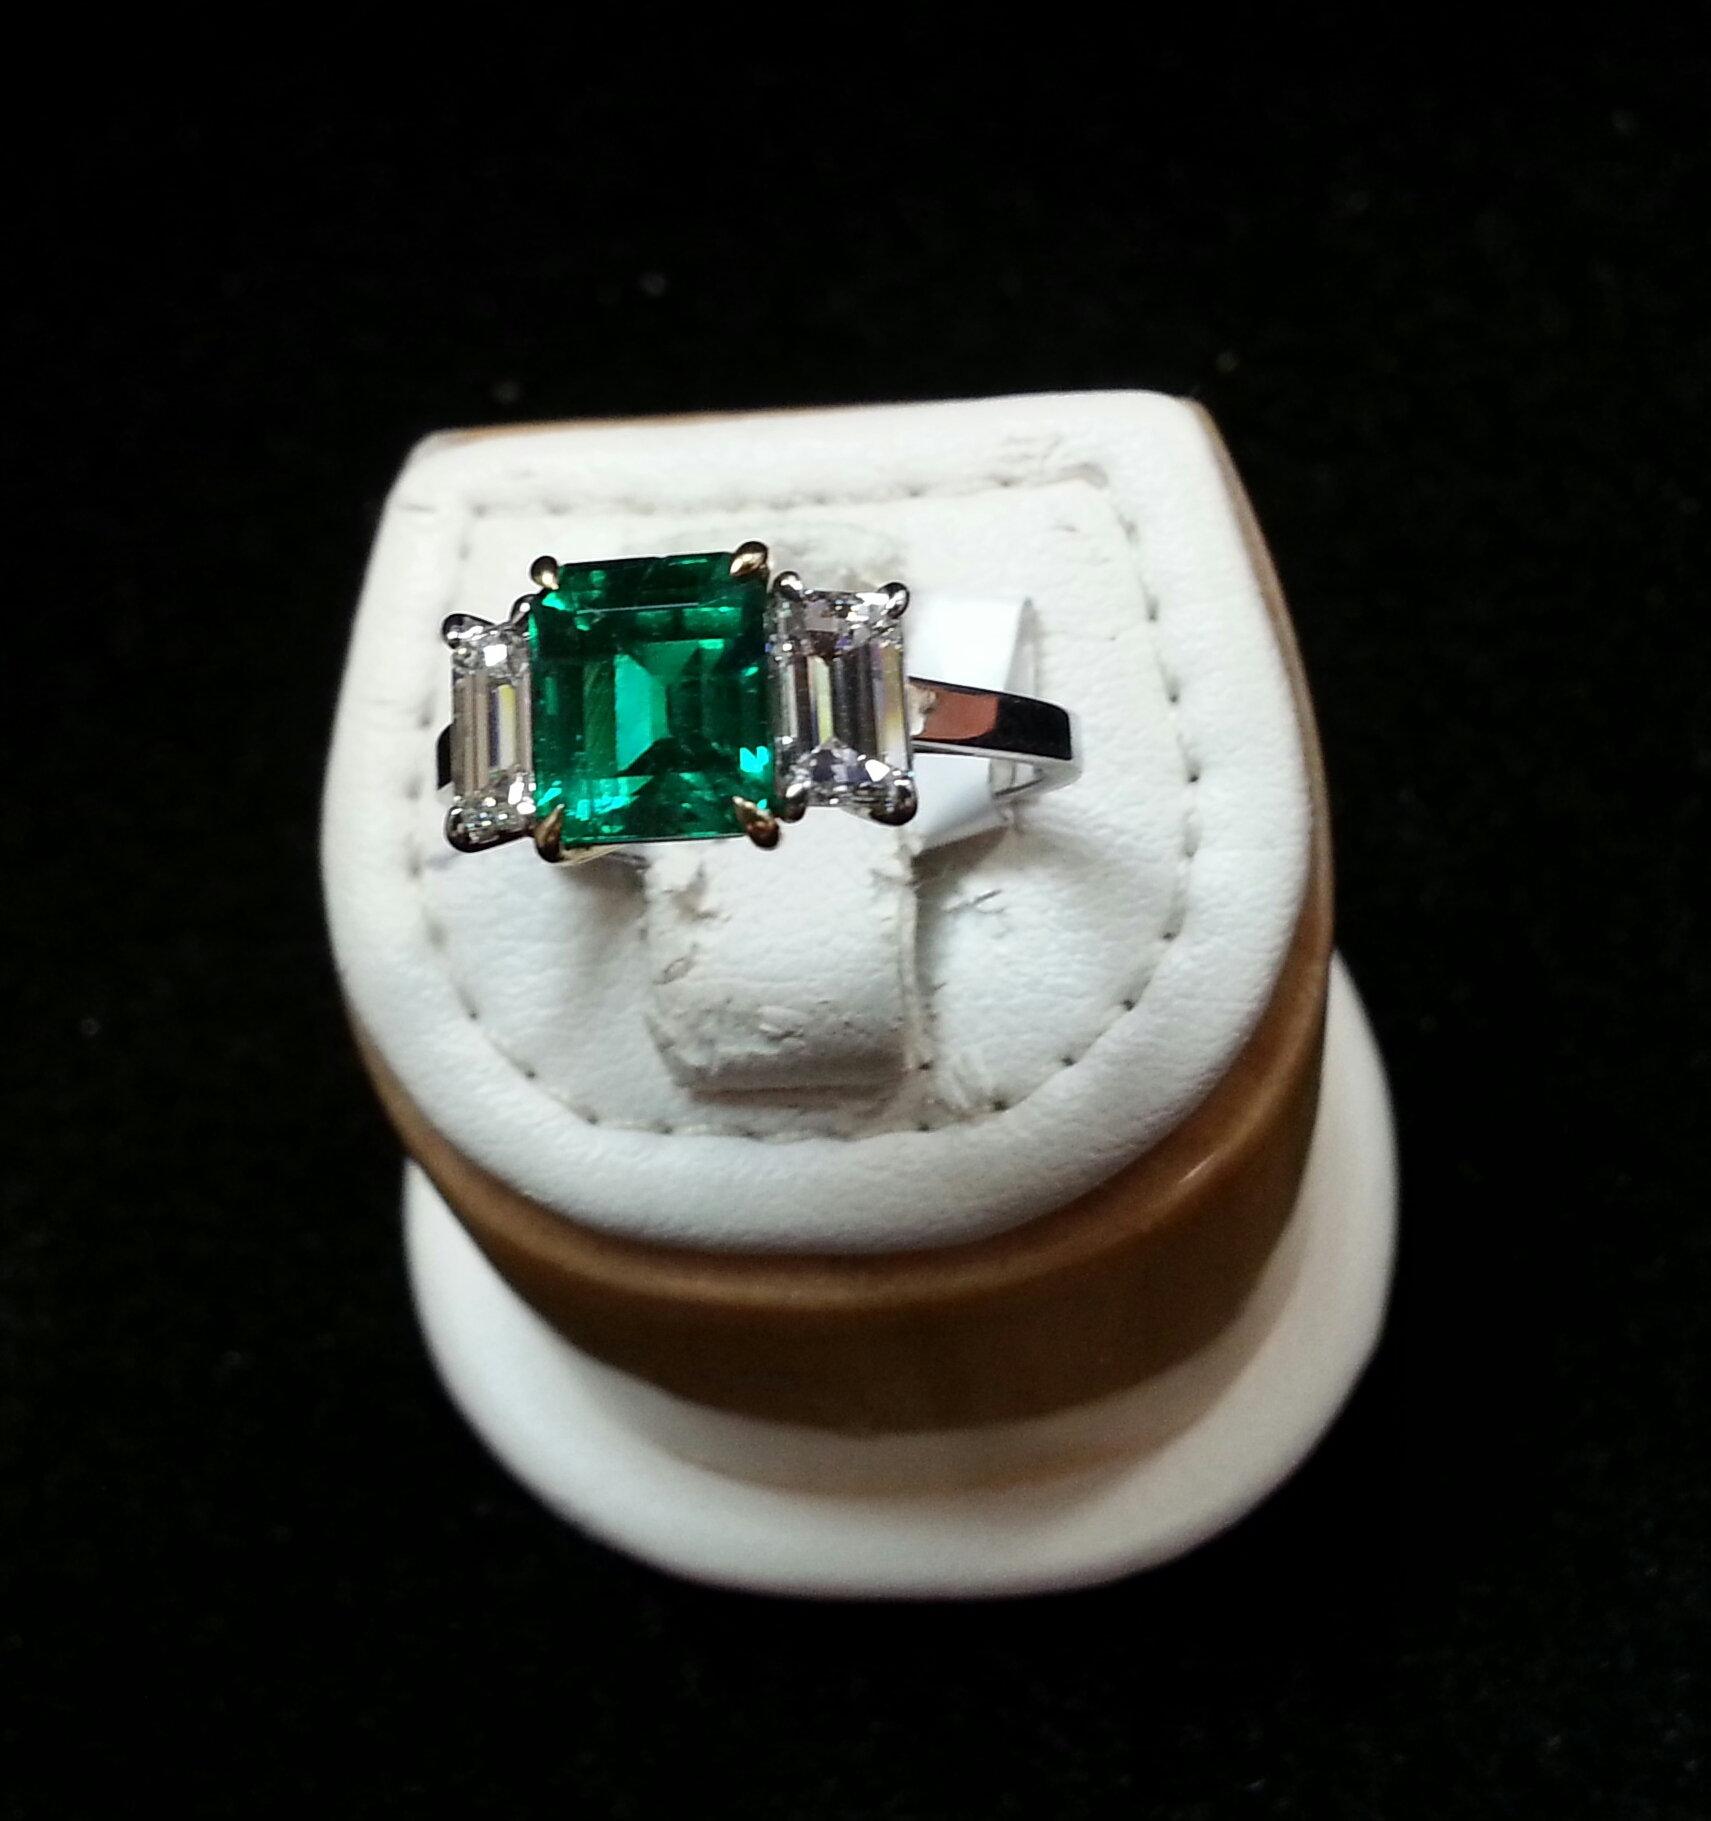 Platinum & 18k Yellow Gold Handmade Ring With an Emerald Cut Emerald & Emerald Cut Diamonds. Emerald is 1.64ct and Diamonds are 1.05ctw F/VS1